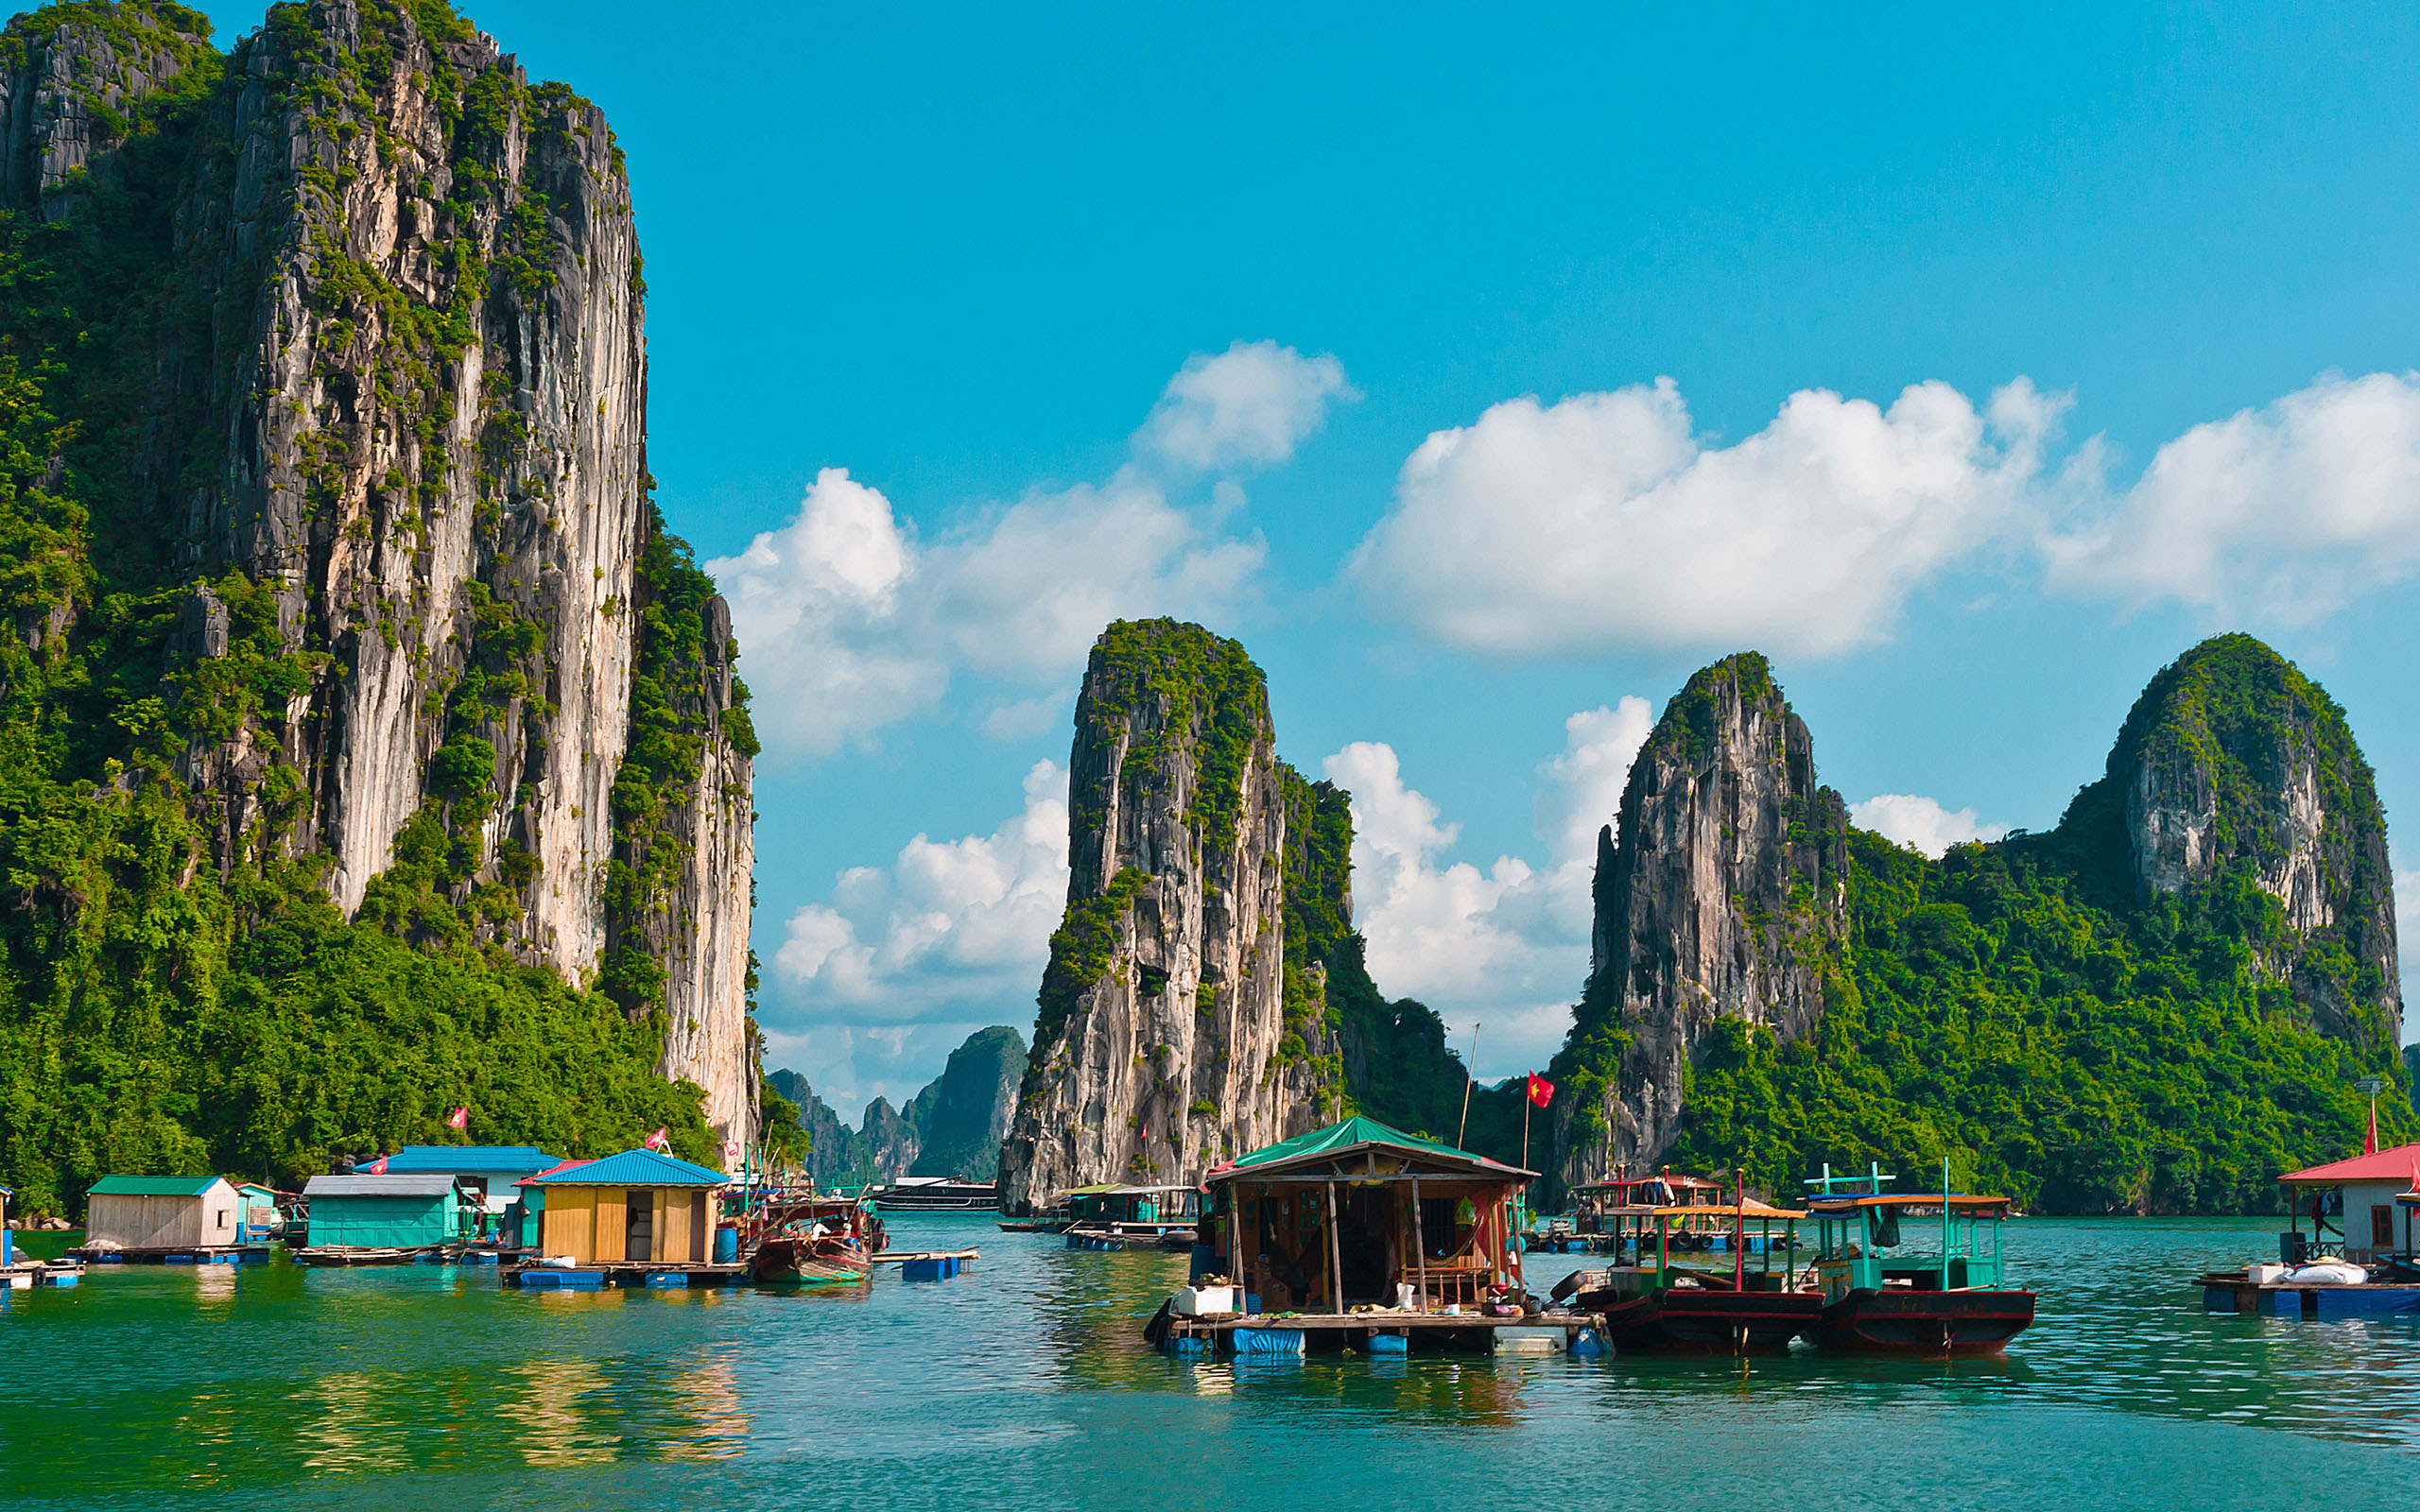 Angeln-In-Halong-Bay-Vietnam-1 - Ha Noi to Ha Long bay by private car